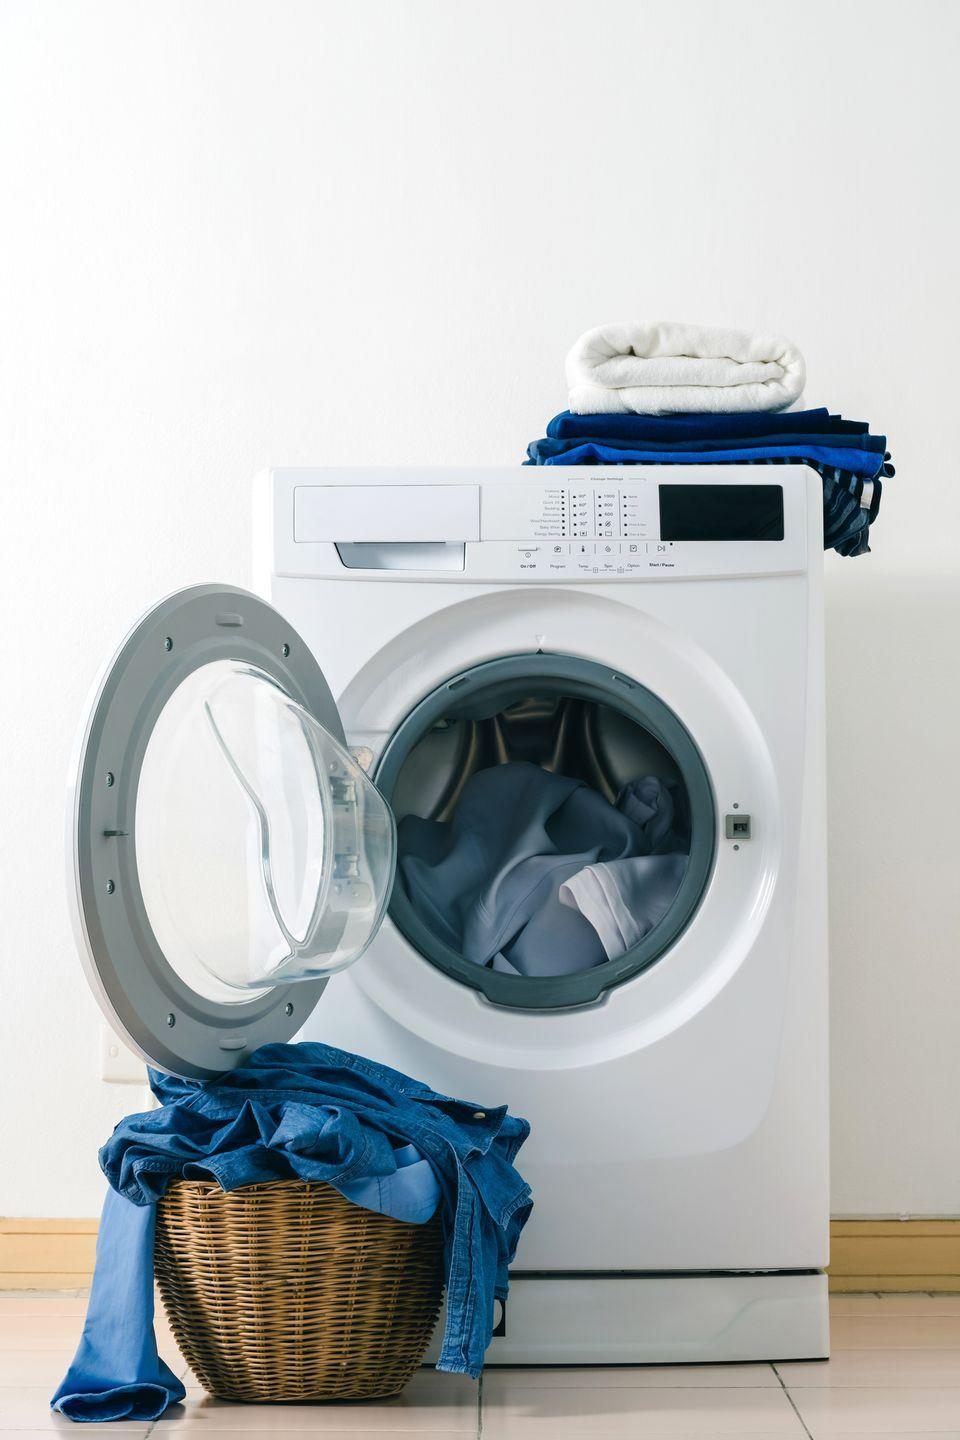 "<p>Just like your washing machine, your dryer needs regular cleanings as well. HGTV recommends <a href=""https://www.hgtv.com/lifestyle/clean-and-organize/how-and-why-you-should-clean-your-dryer-today"" rel=""nofollow noopener"" target=""_blank"" data-ylk=""slk:wiping down your dryer drum"" class=""link rapid-noclick-resp"">wiping down your dryer drum</a> using an even mix of white vinegar and water in a spray bottle and a microfiber cloth. </p><p>Make sure you also clean out the lint that's captured in the mesh screen of your lint trap. To do so, remove the lint trap and vacuum the area with a crevice attachment. Then, use a toothbrush dipped in warm, soapy water to clean the mesh. Allow the trap to dry completely before putting it back into the dryer. </p>"